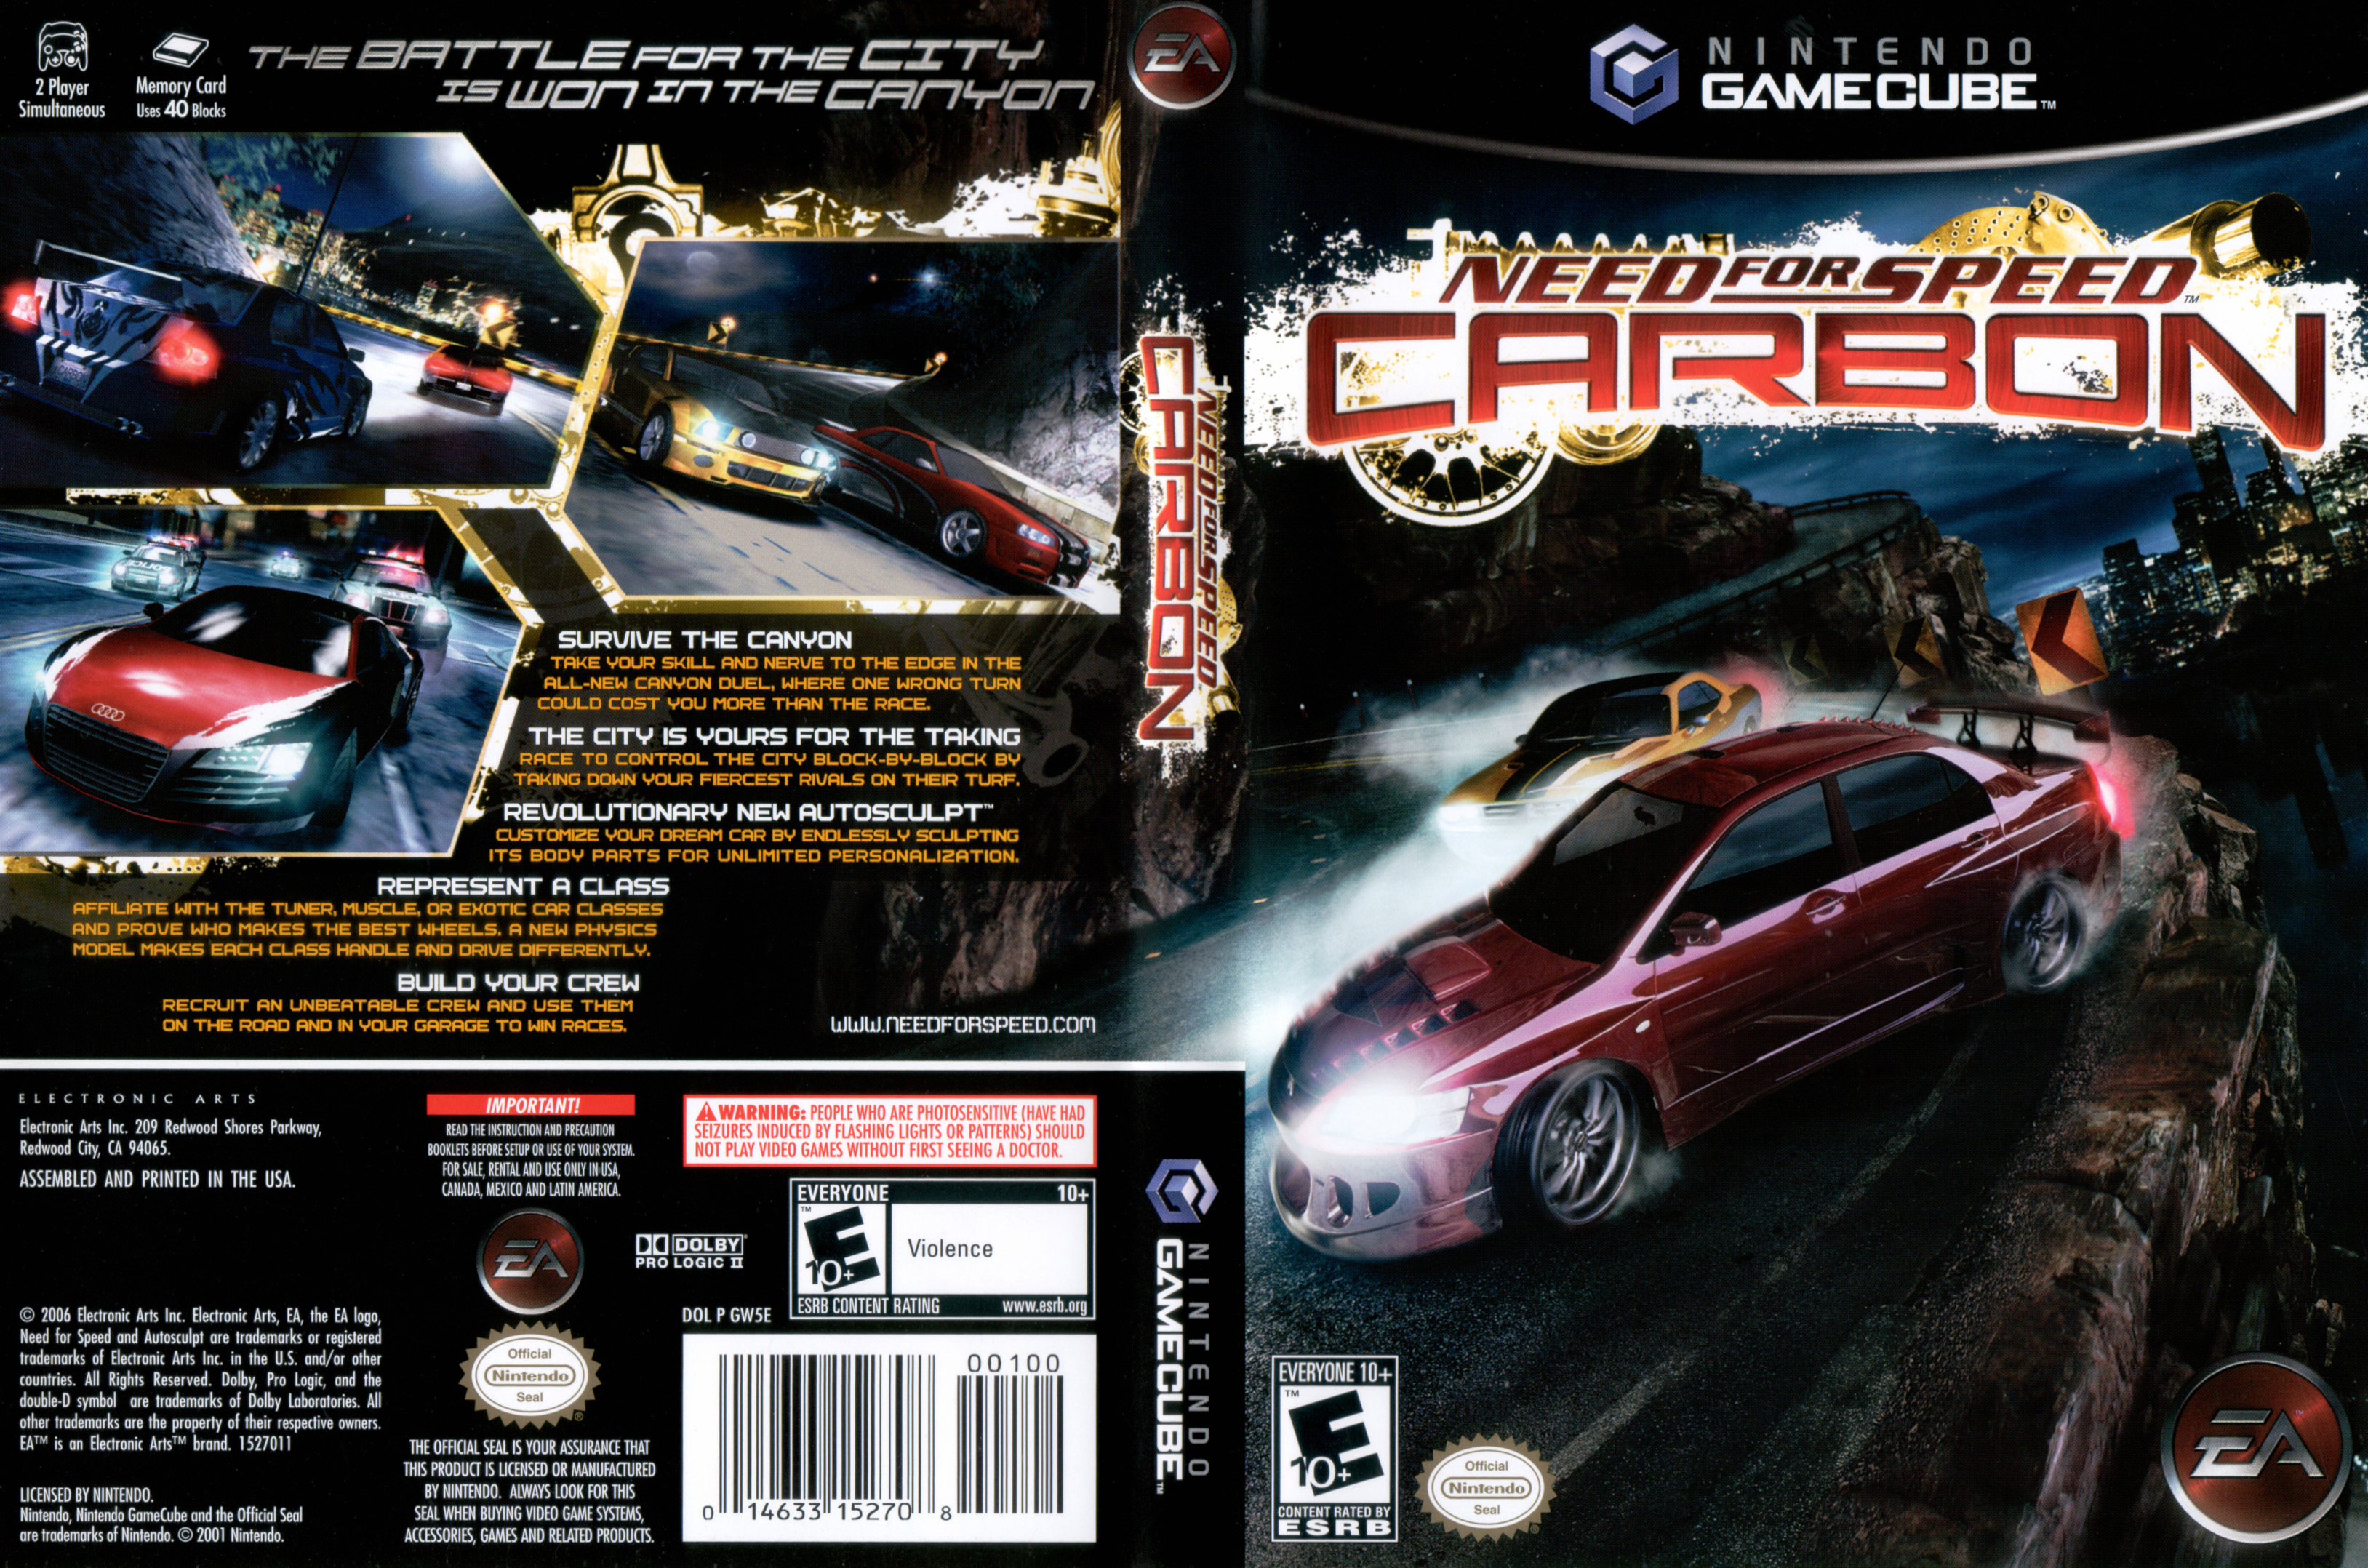 Need For Speed Carbon Gamecube Covers Cover Century Over